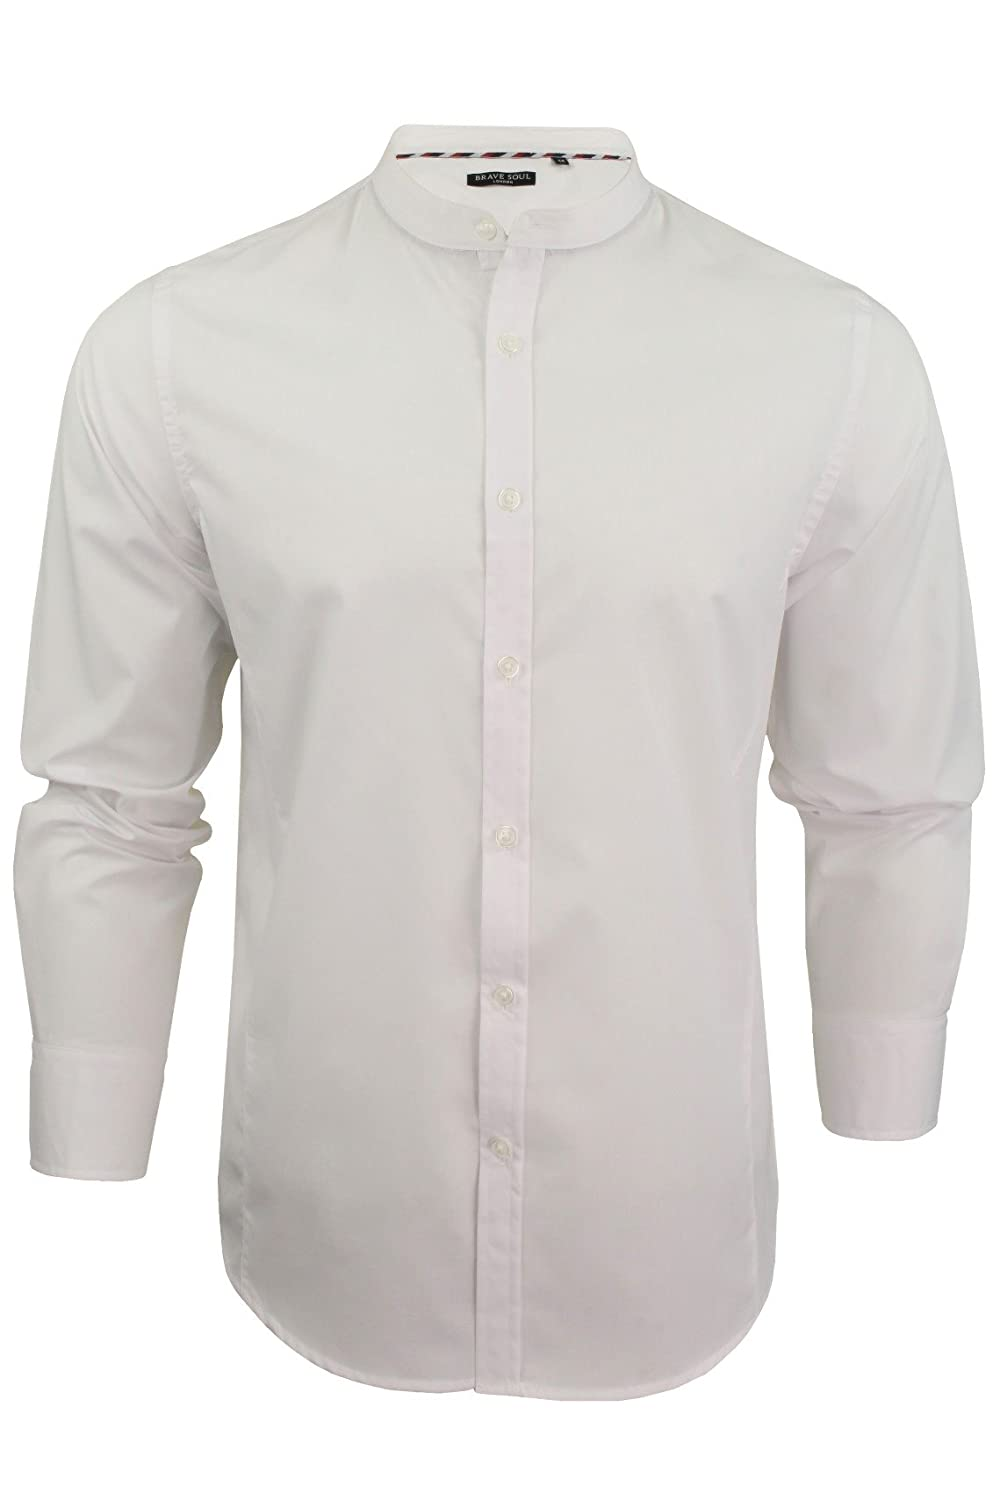 Vintage Shirts – Mens – Retro Shirts Brave Soul Mens Plain Shirts Long Sleeved Grandad Collar Button Fashion Casual £14.99 AT vintagedancer.com